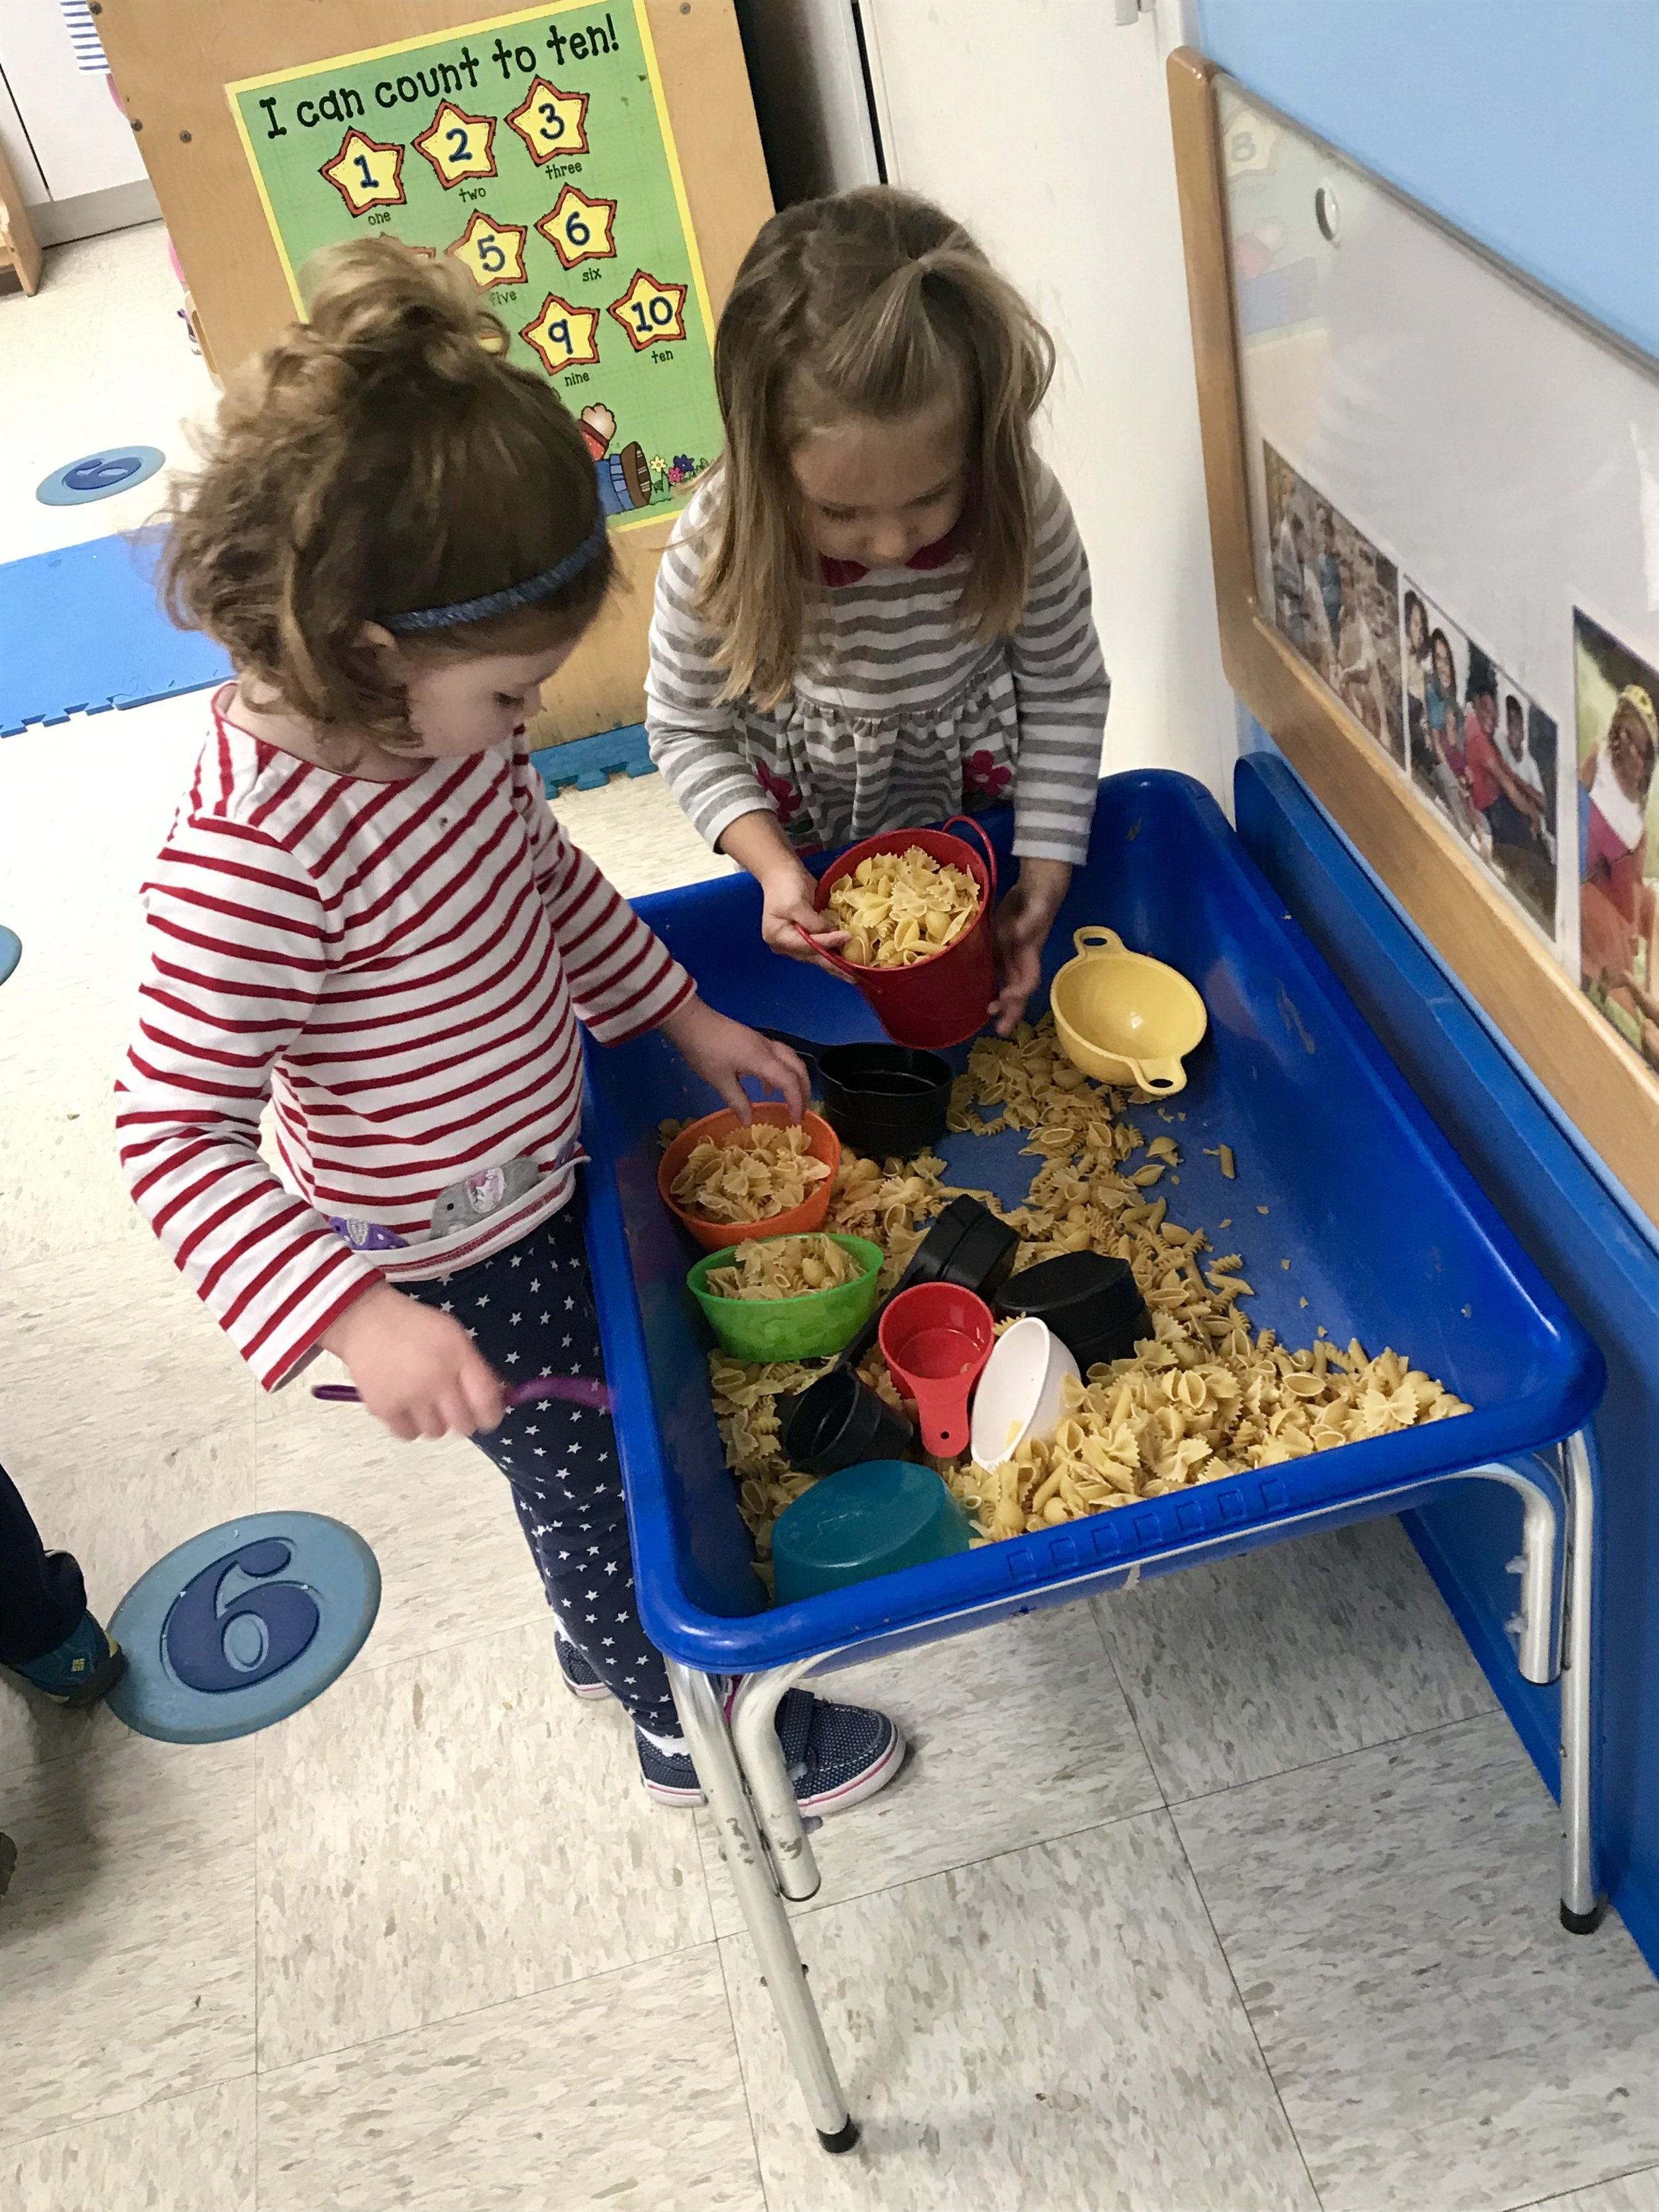 Pasta in the sensory table is great for pouring and measuring.